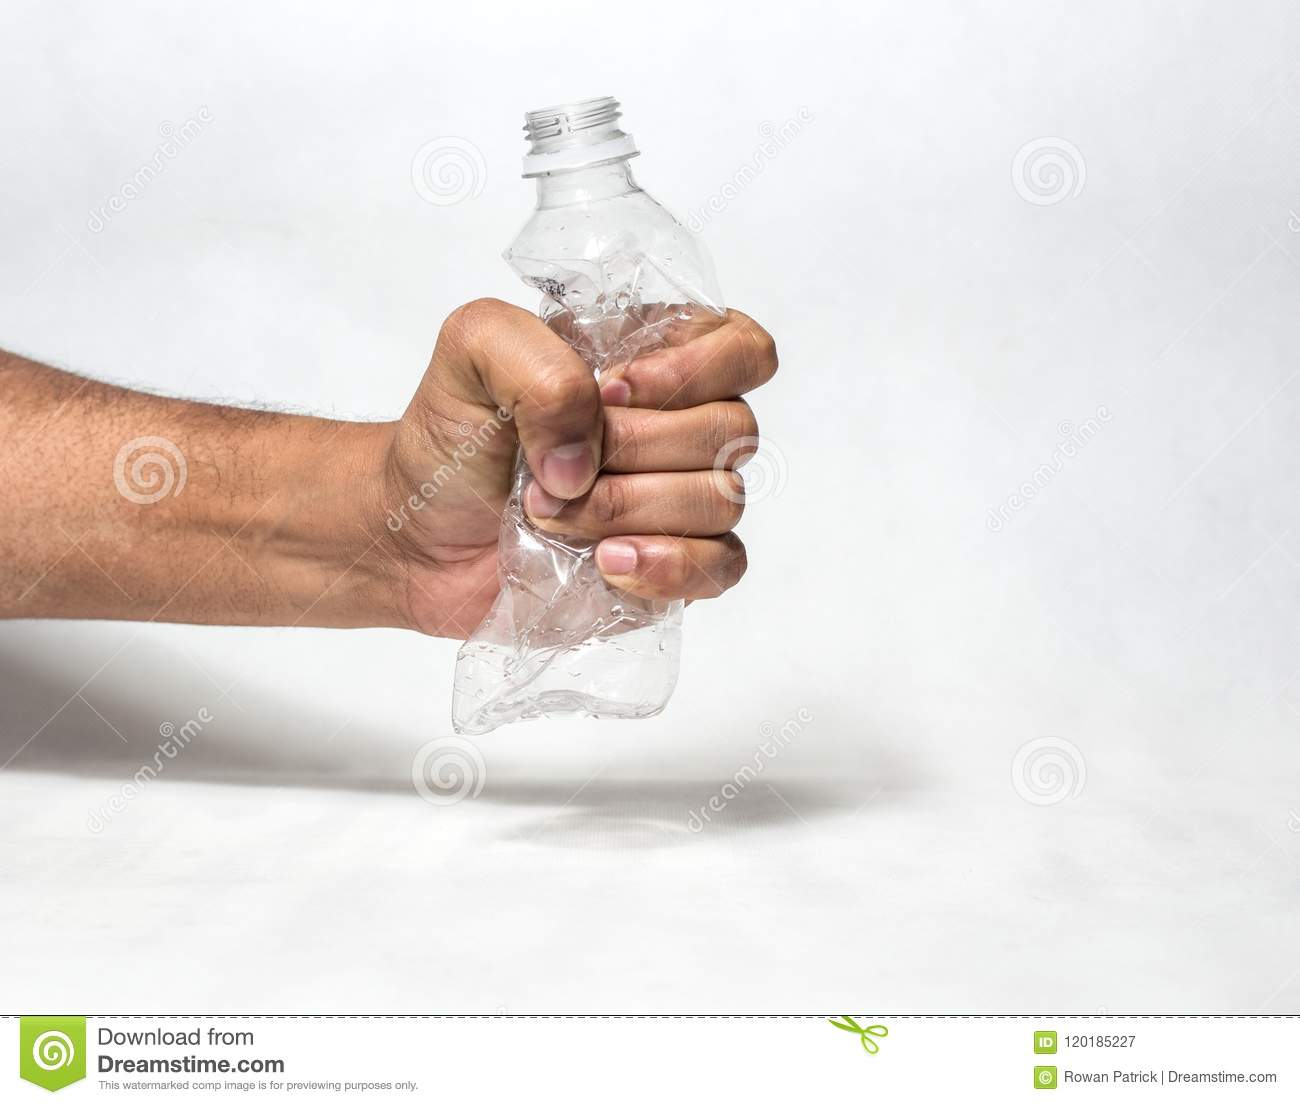 6affa8b88fc Hand squashing empty plastic water bottle resembling ban of single use  plastic recycle